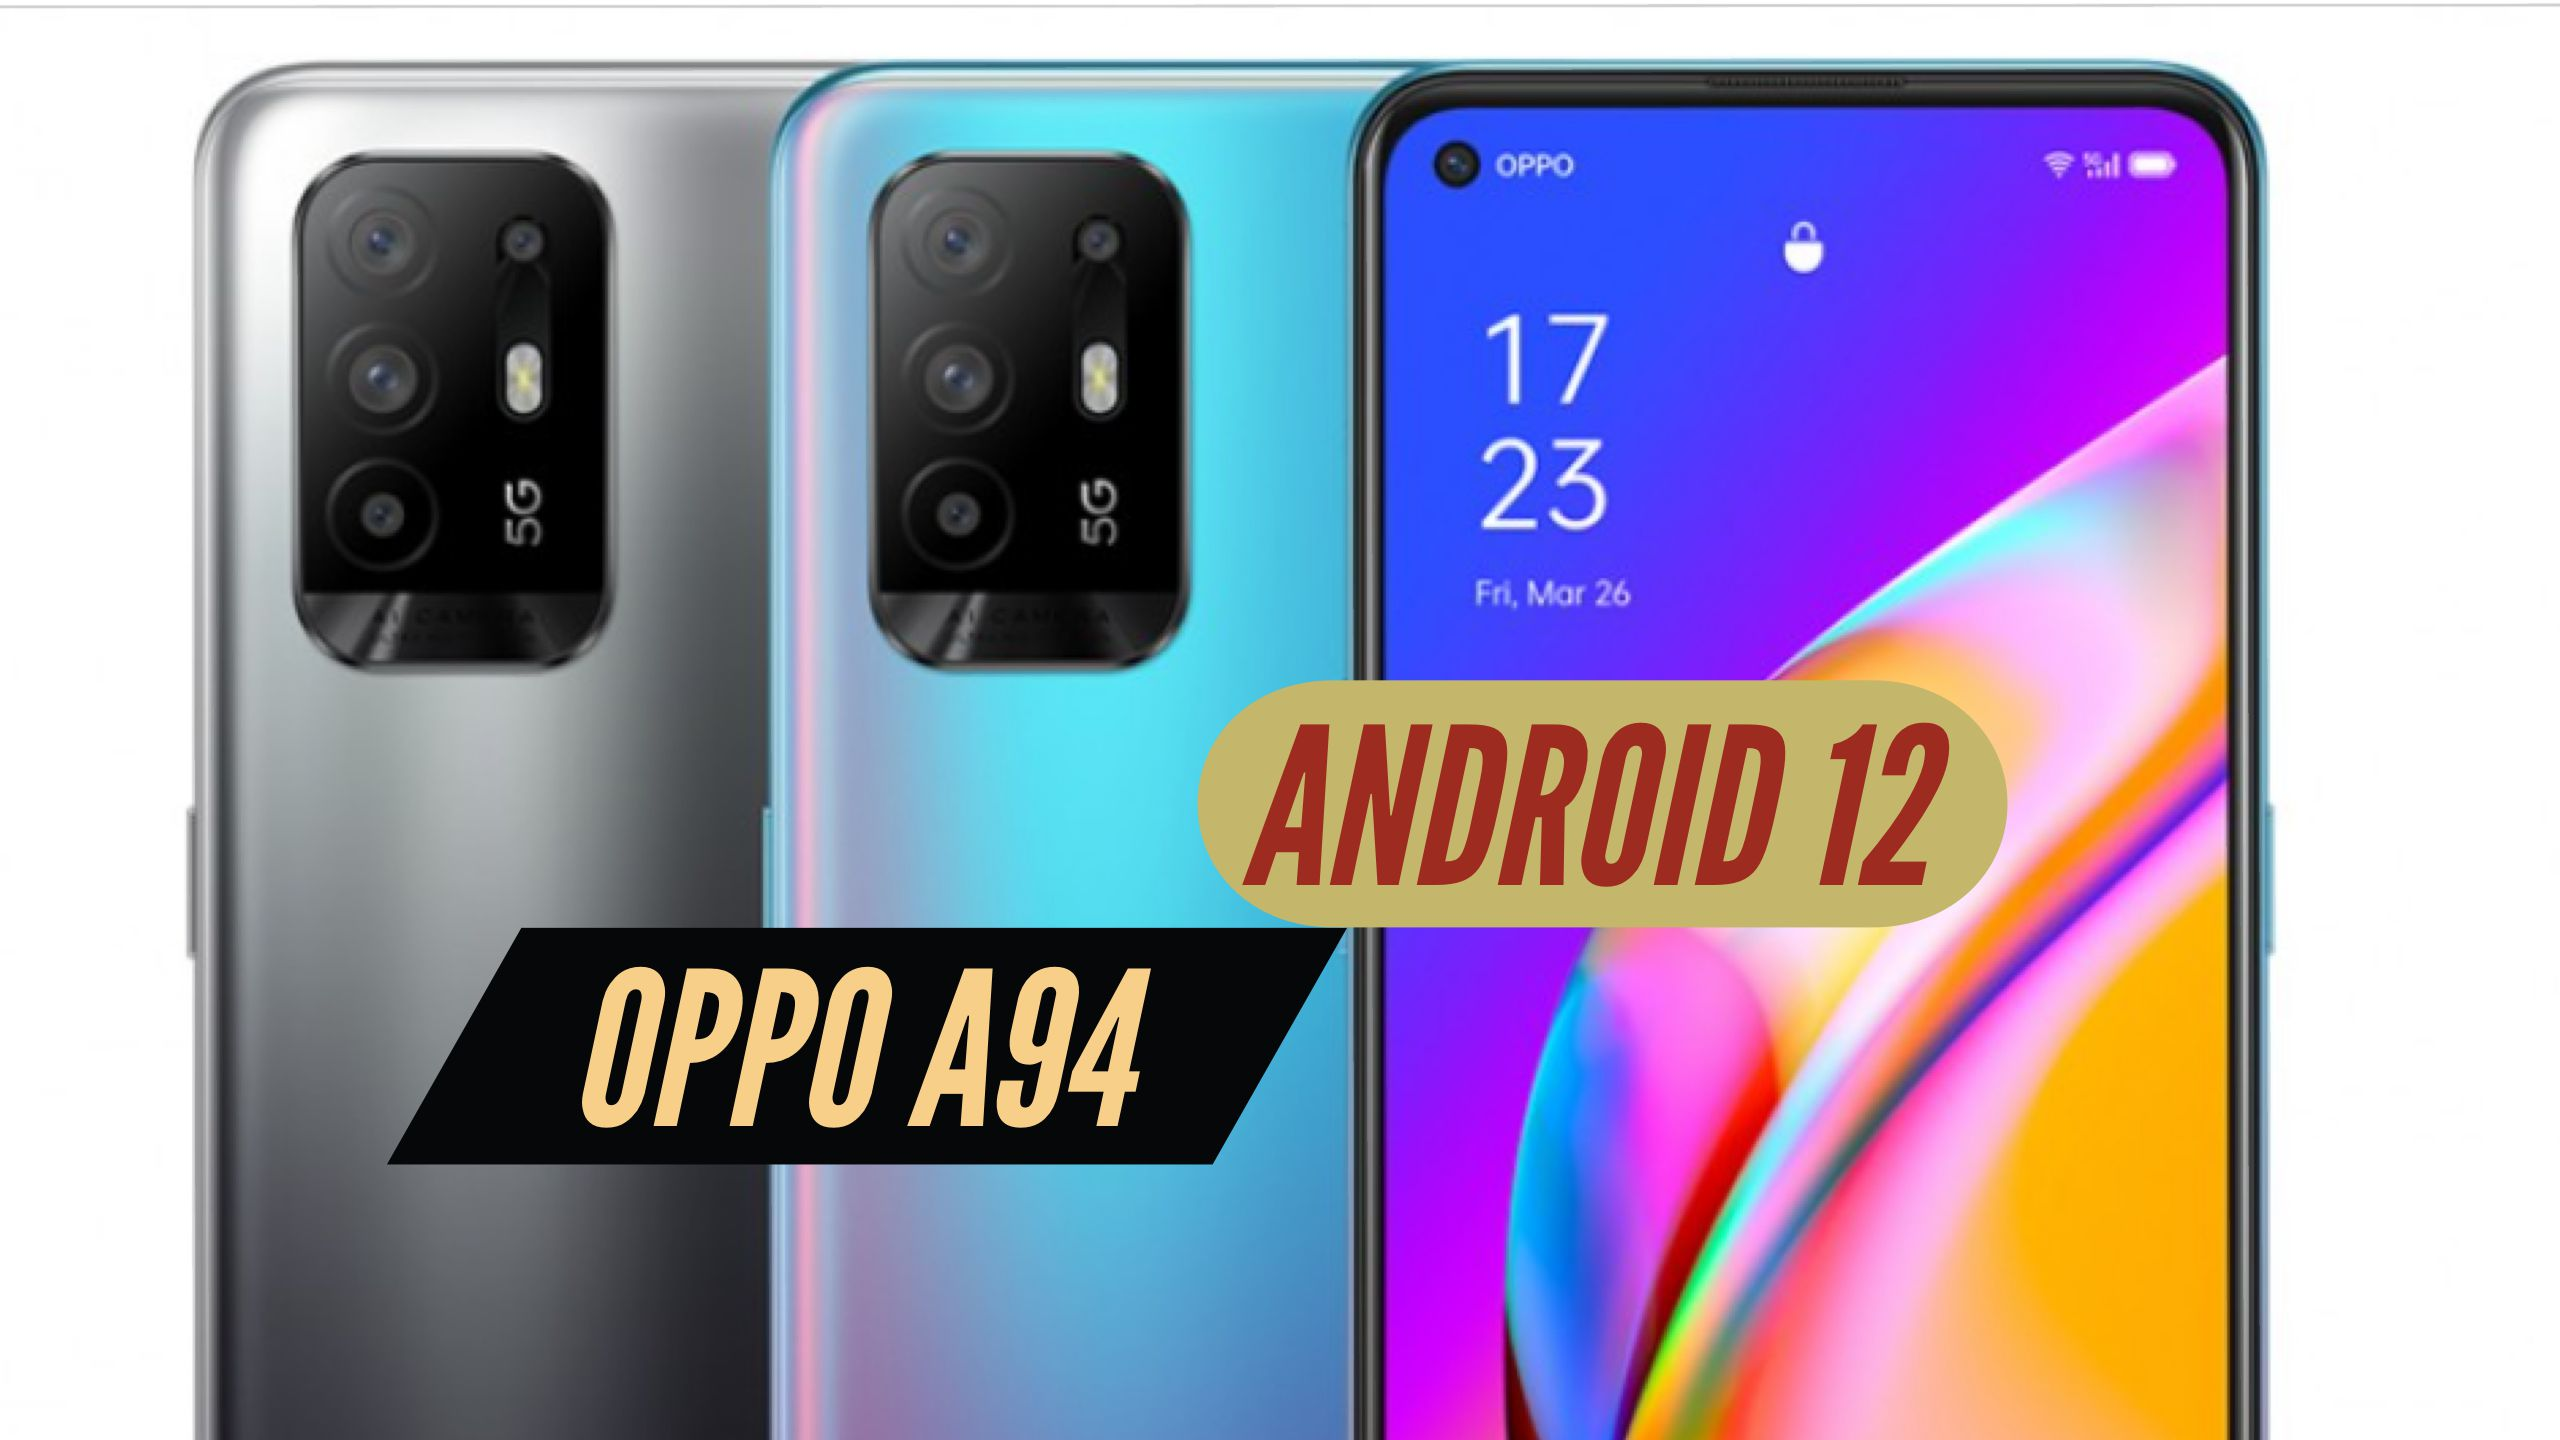 OPPO A94 Android 12